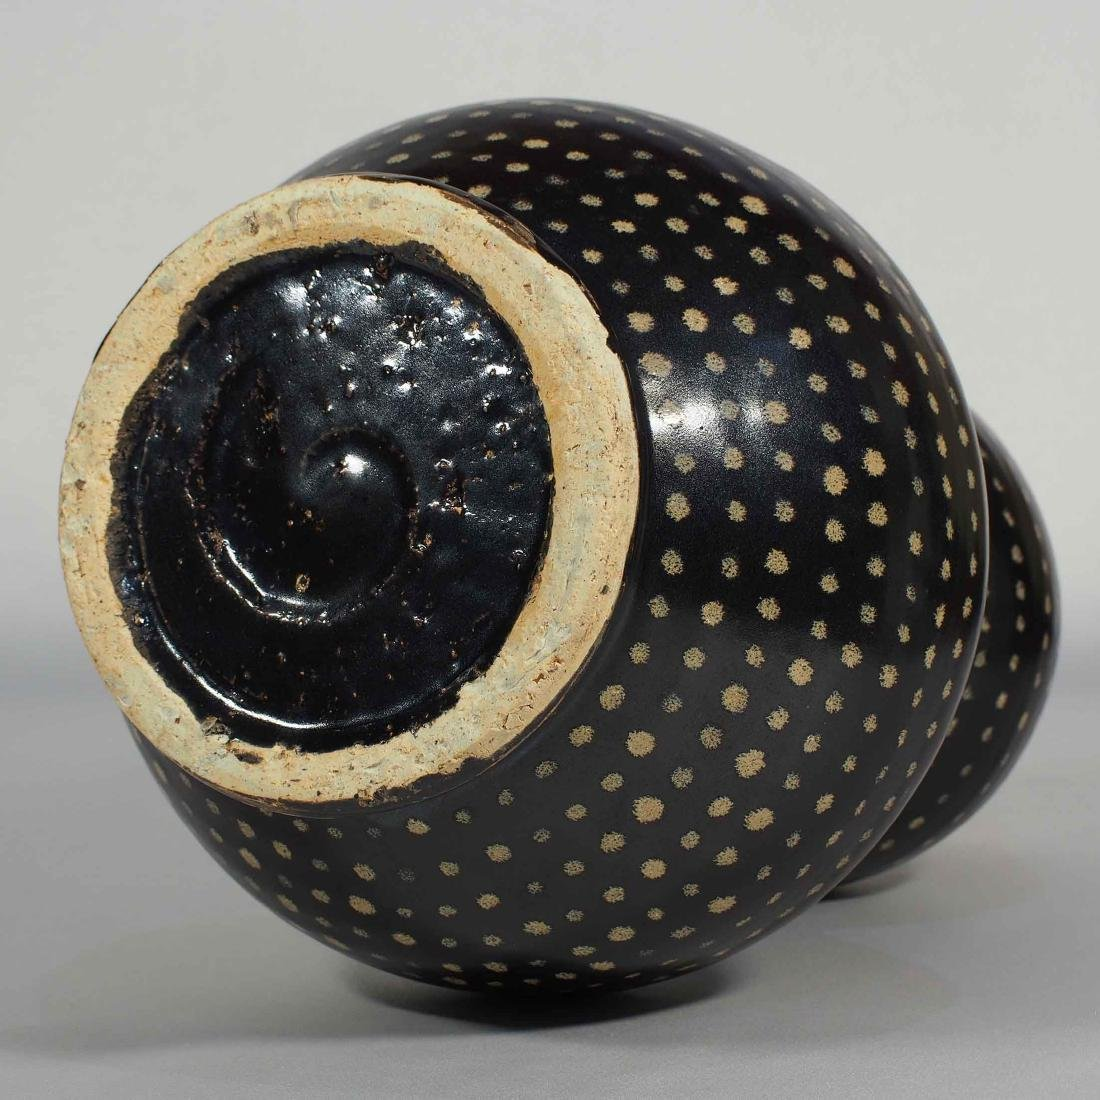 Jizhou Large Double-Gourd with Dotted Design, Song - 7